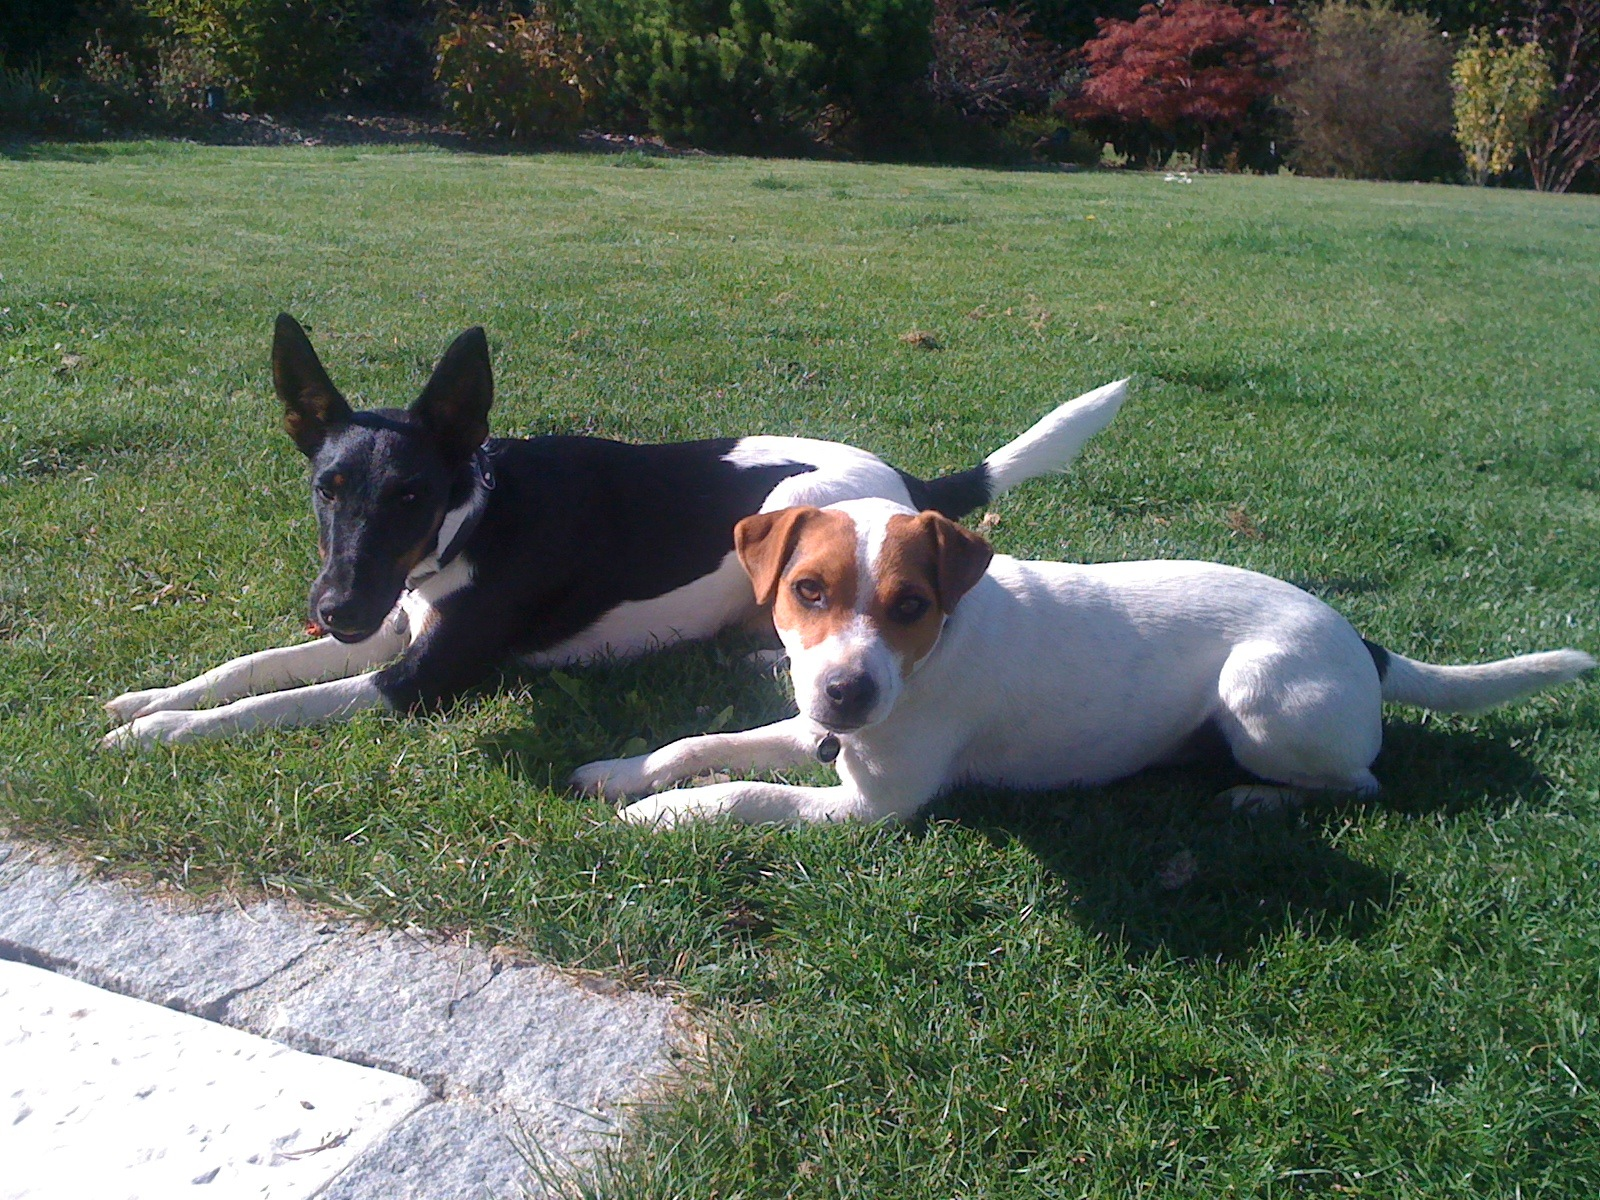 Ringo (Fox) and Fiddle (Parson Russell) sunbathing